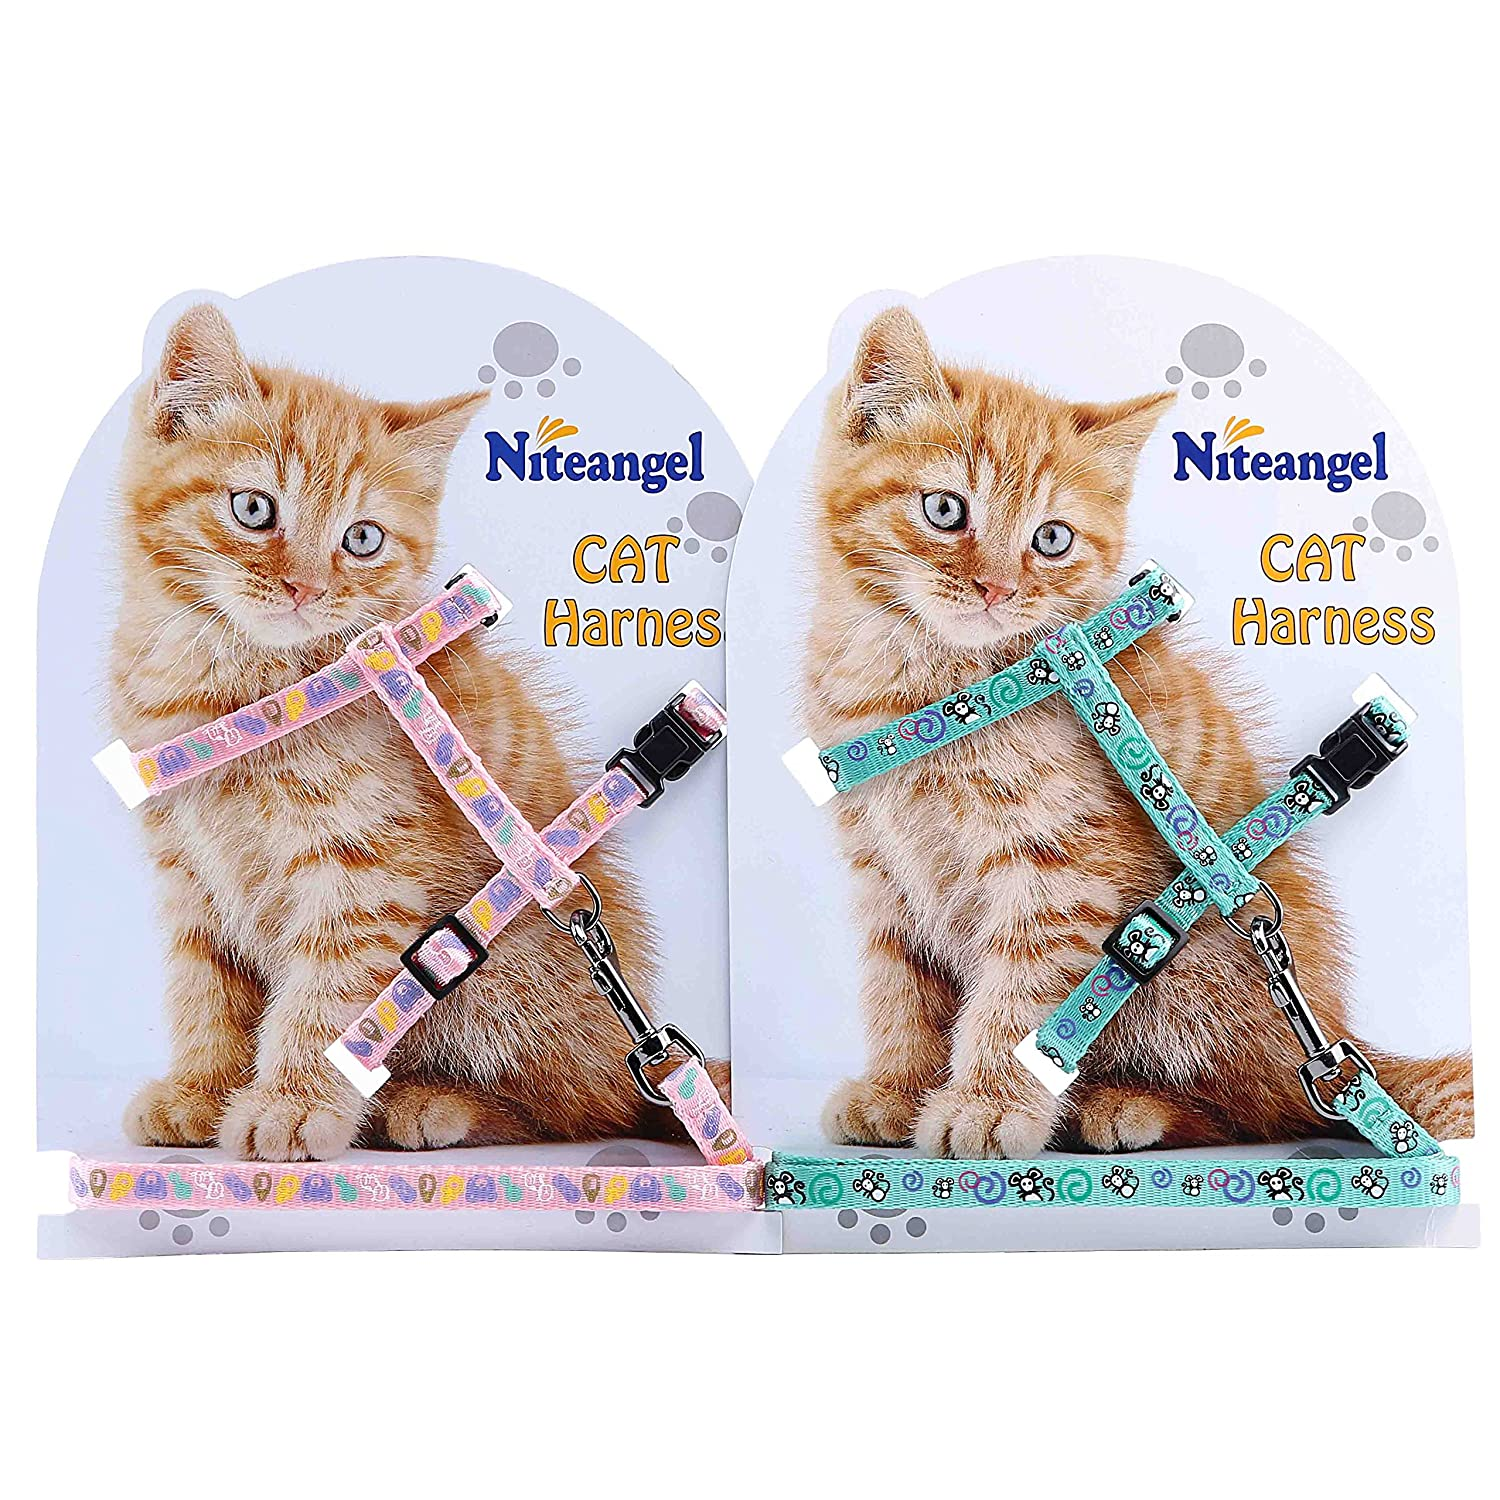 5. Niteangel Cat Harness